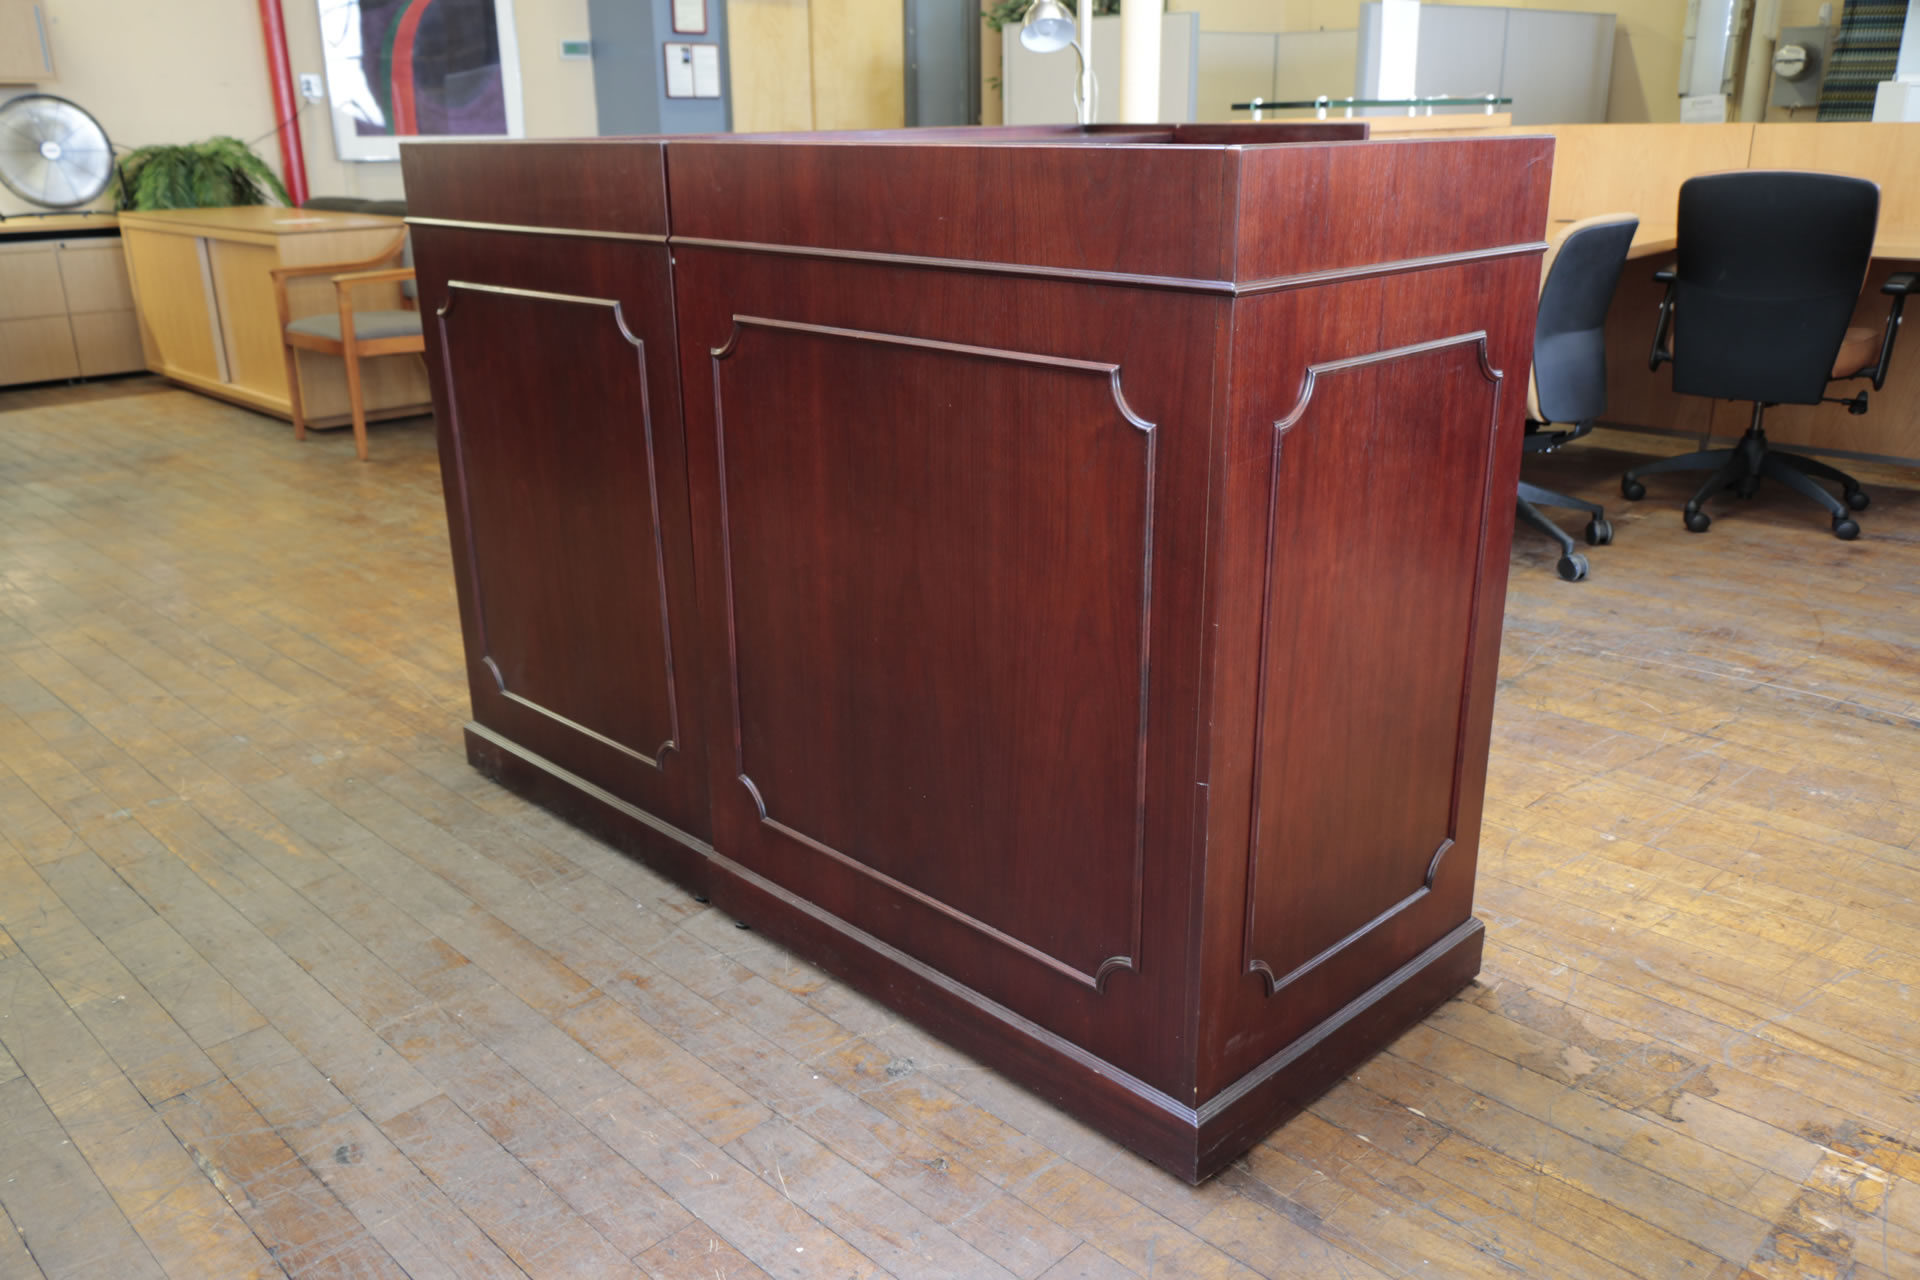 peartreeofficefurniture_peartreeofficefurniture_mg_4570.jpg